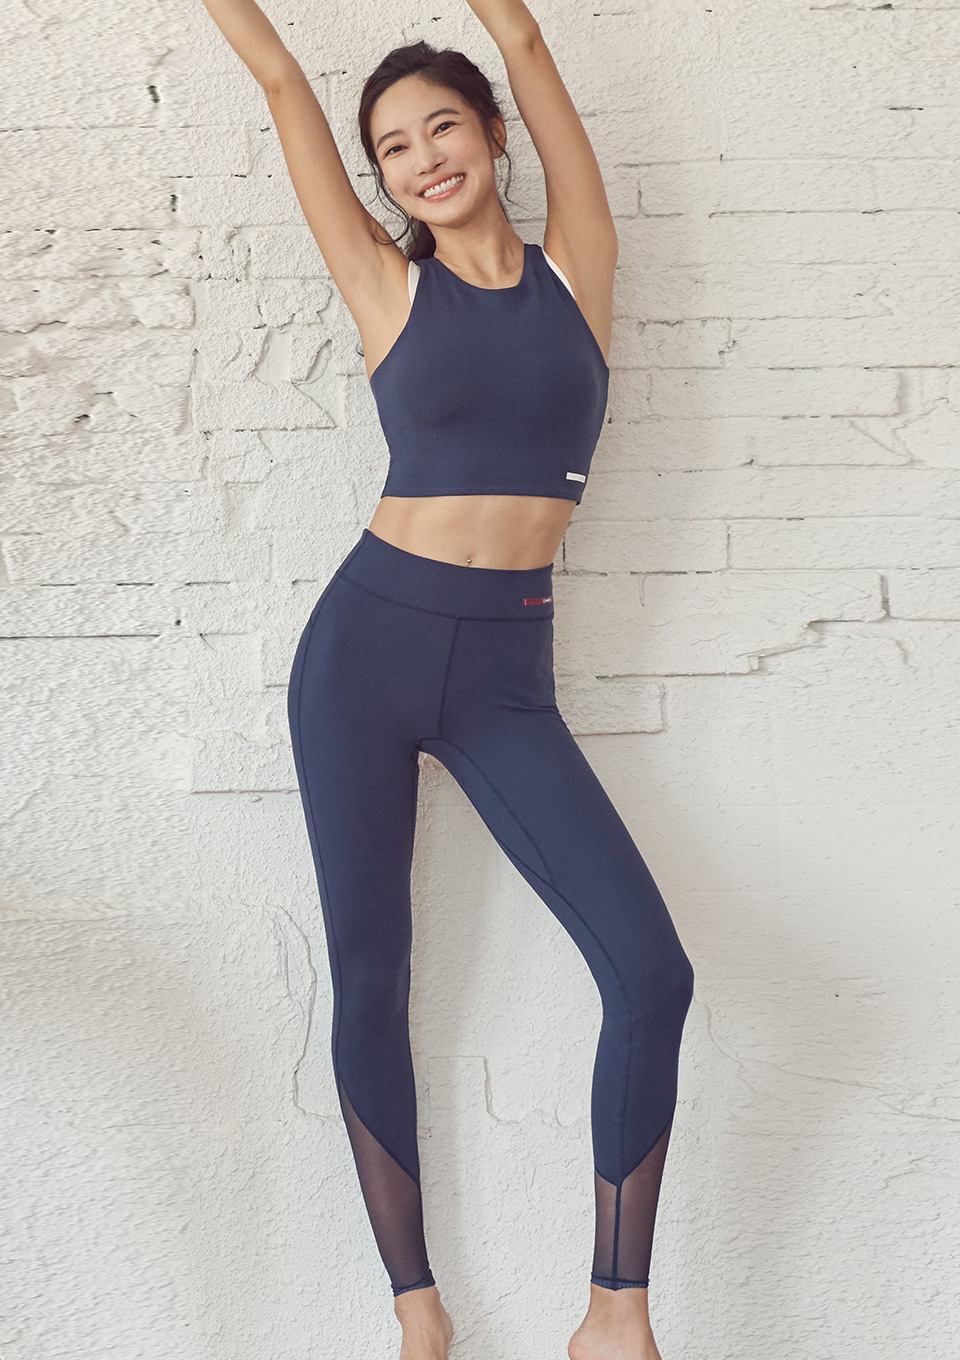 Jaekyung and NS Yoon-G for Barrel Fit - Oct 2017 - Page 2